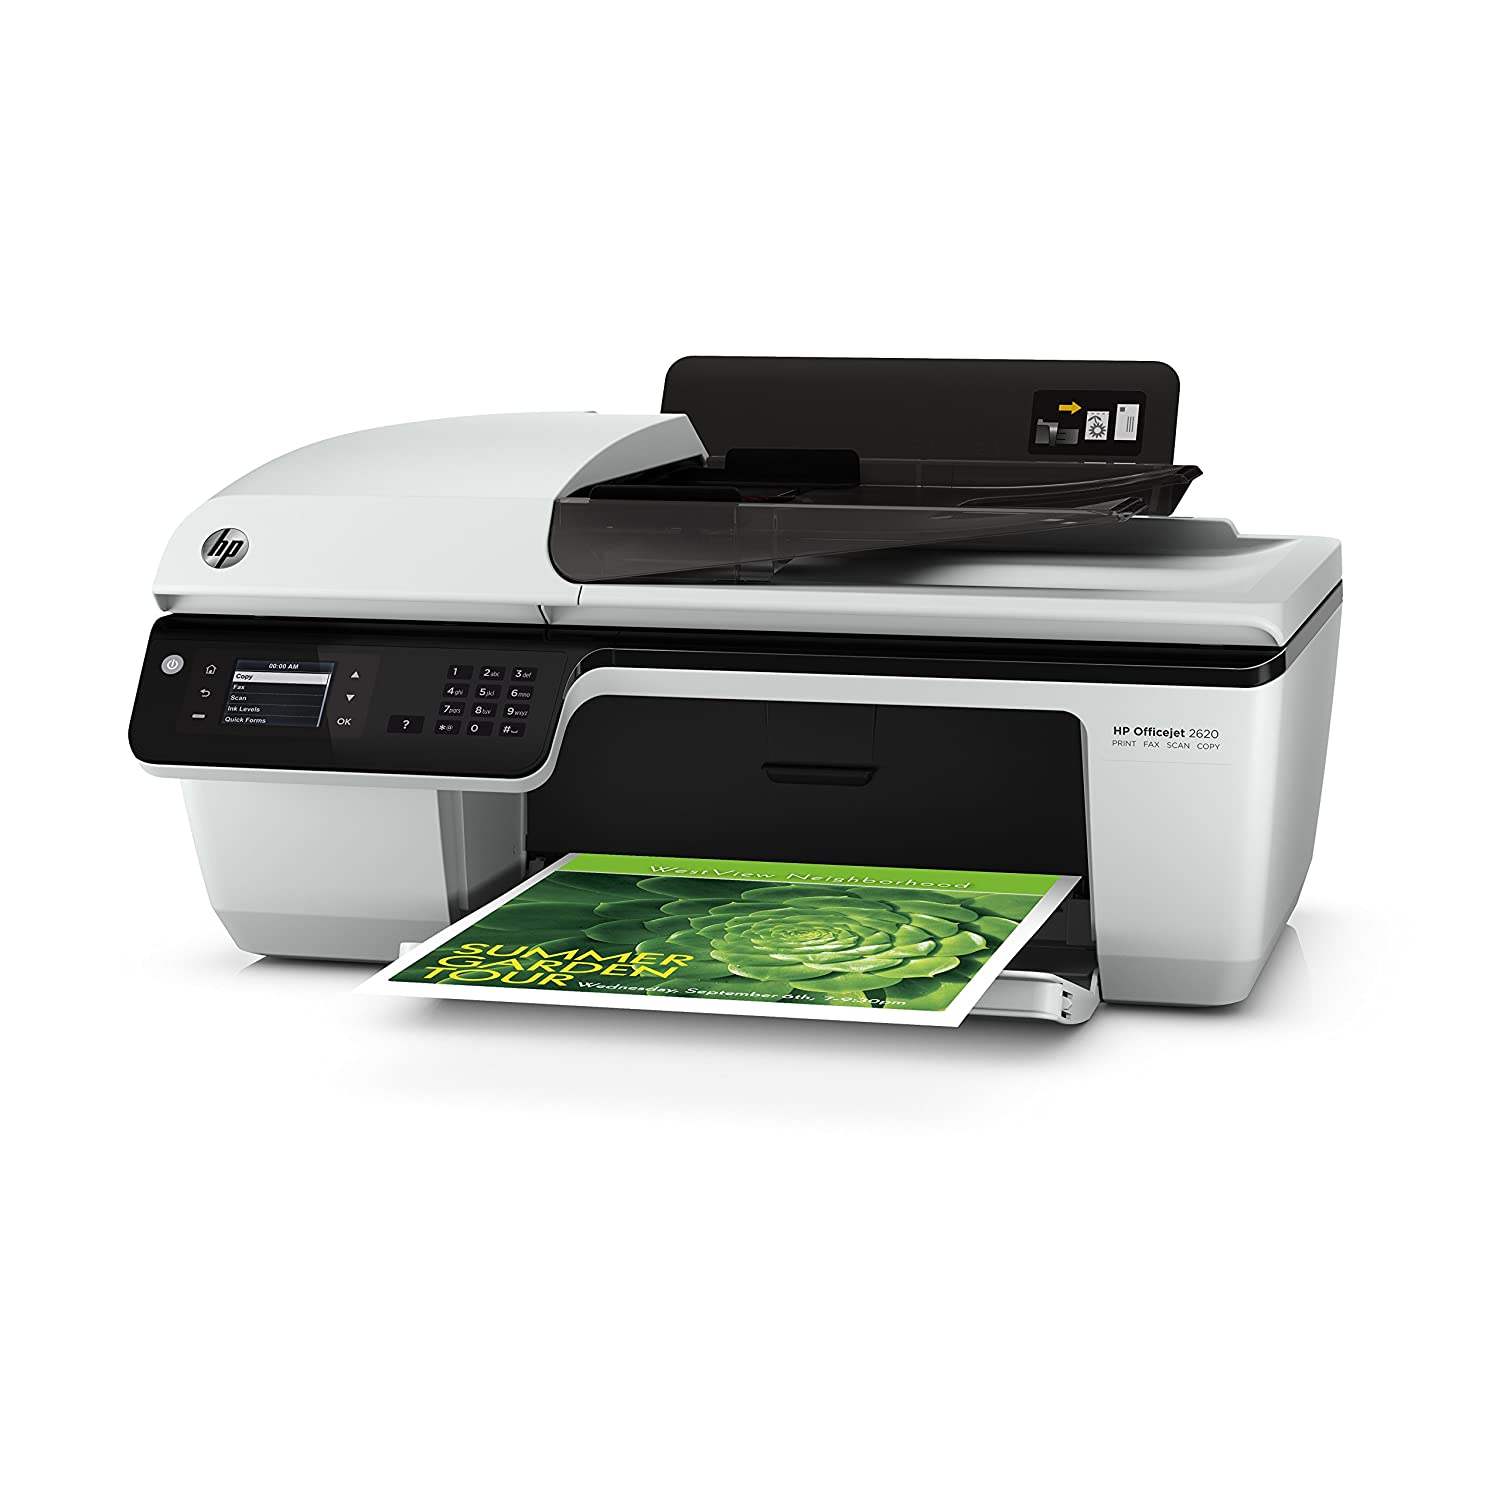 hp officejet 2620 all in one printer amazon co uk computers